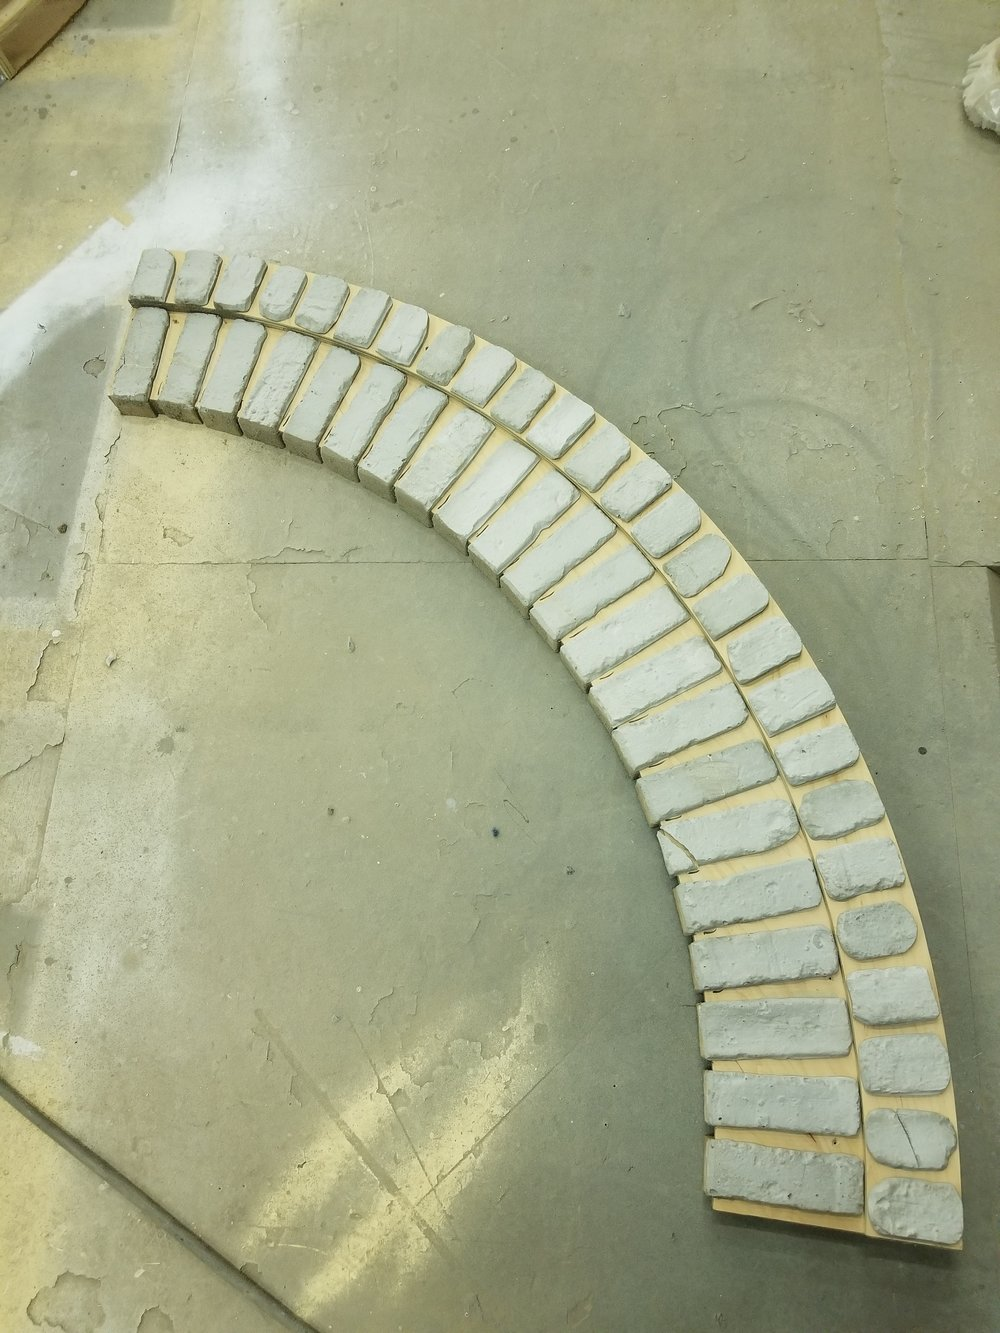 Arch way brick mold